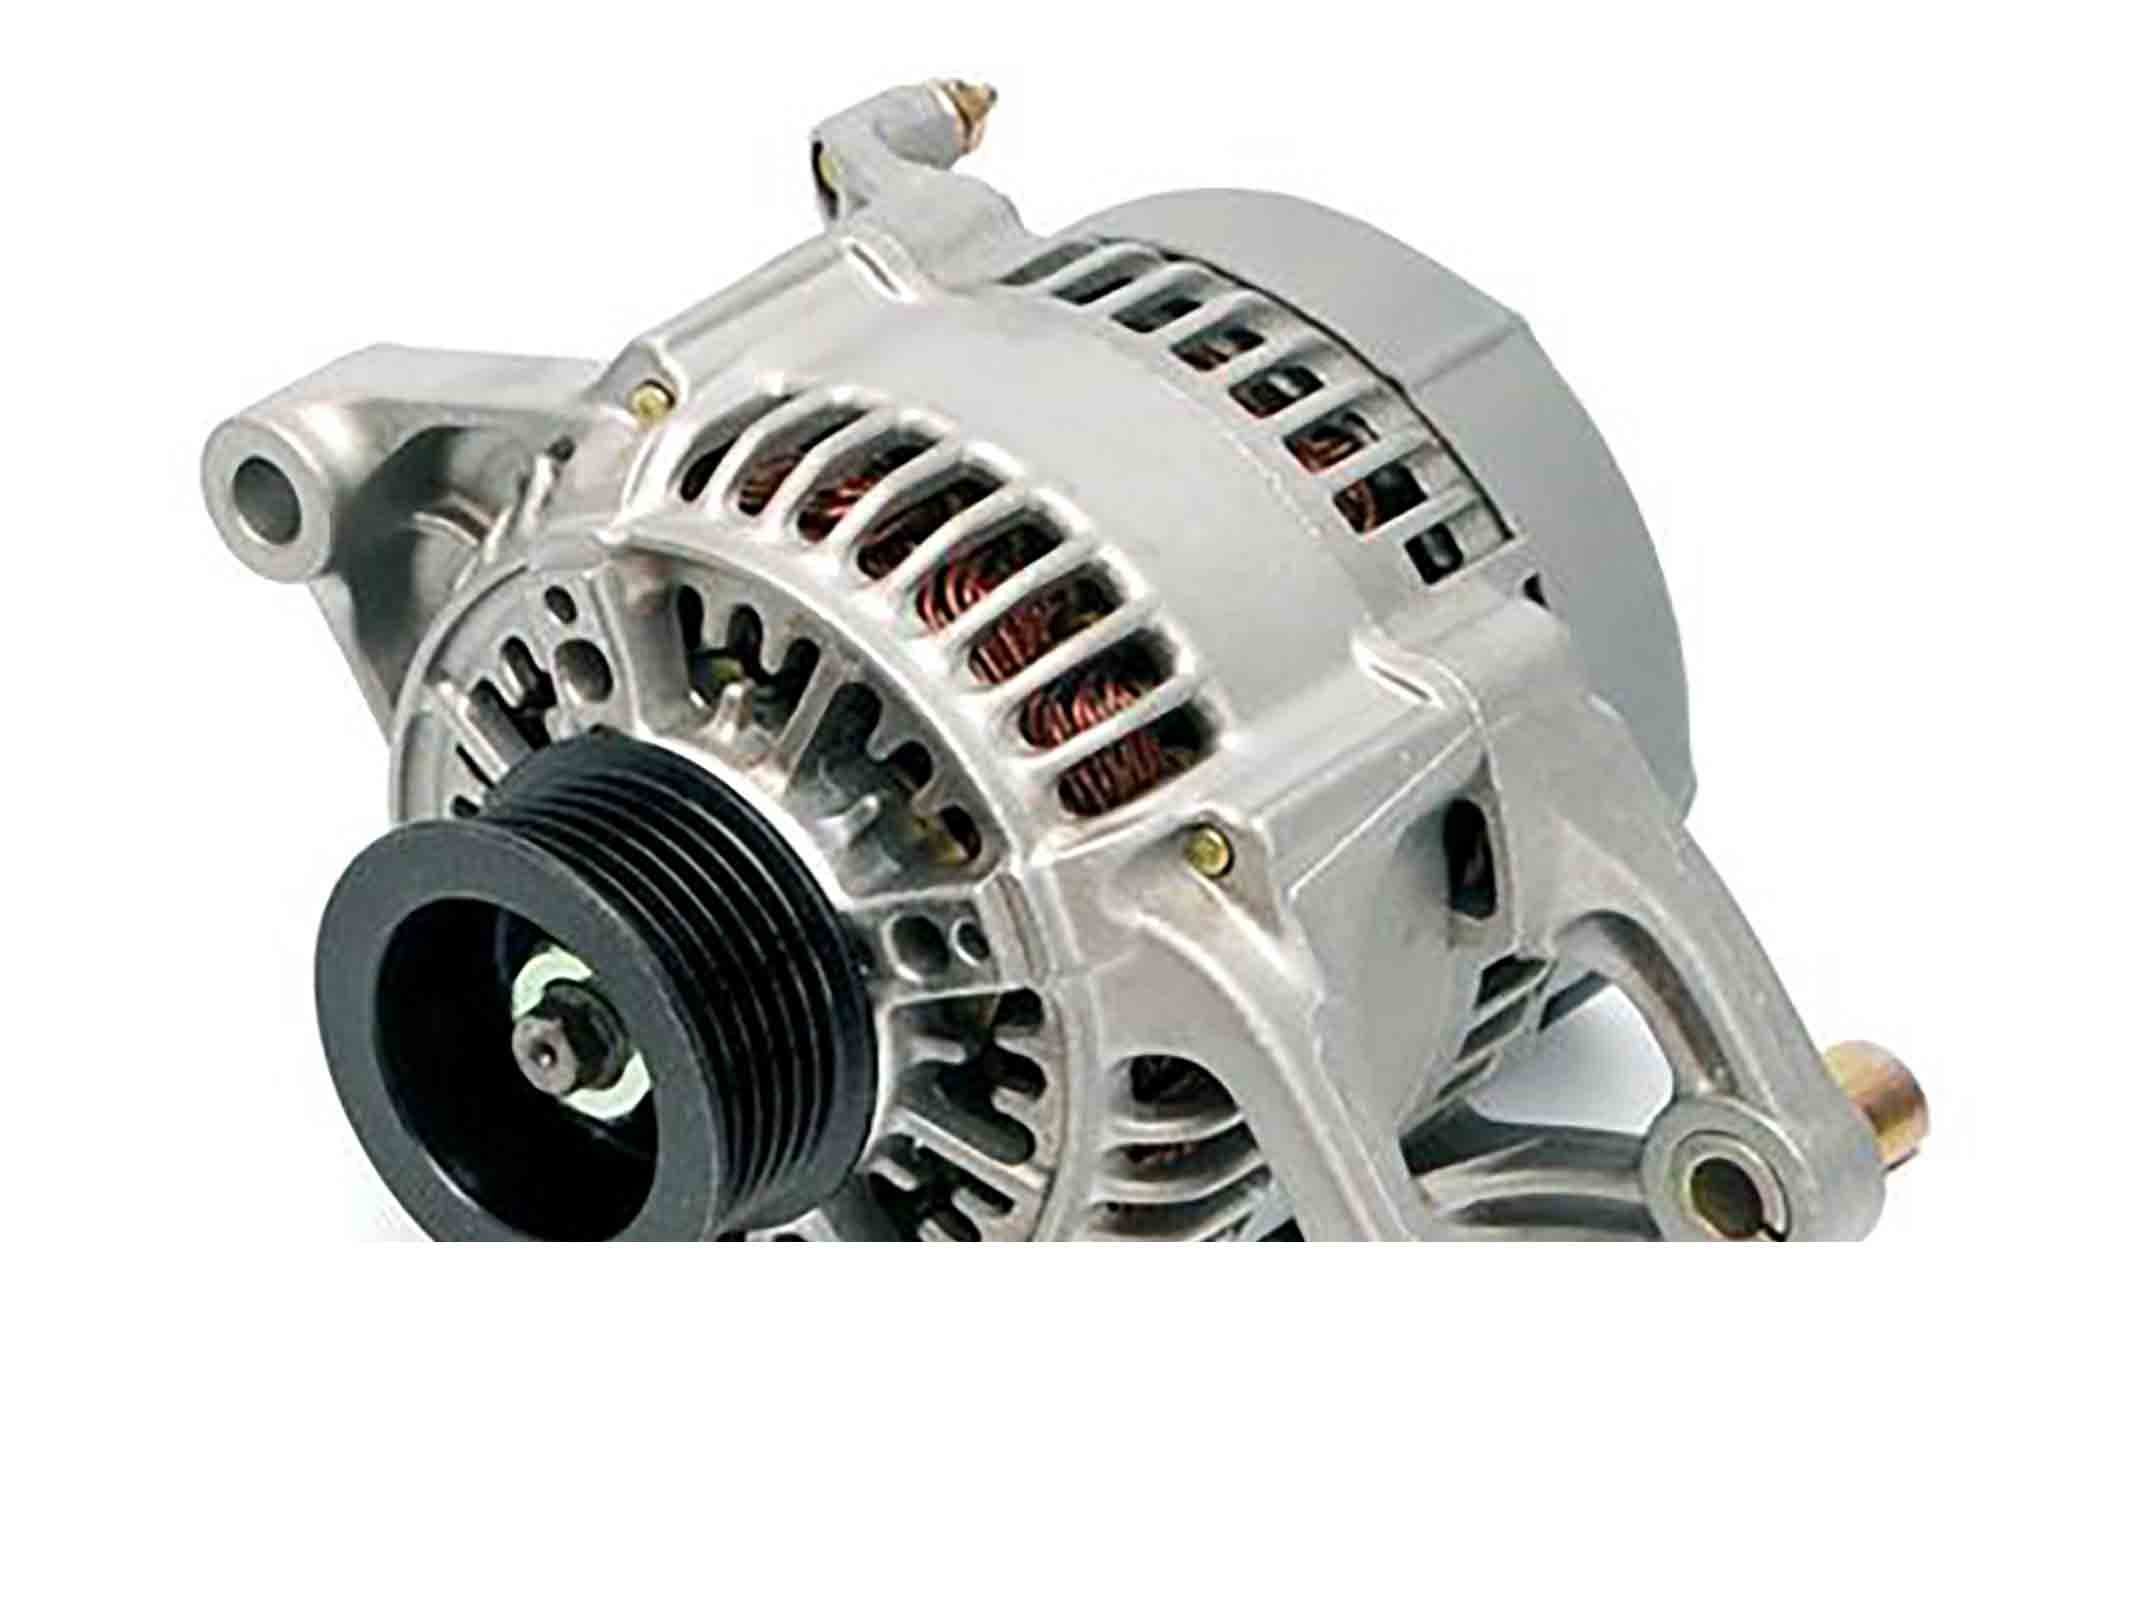 Alternatore wrangler tj 96 01 2.5 l. + 4.0 l. ricambi jeep